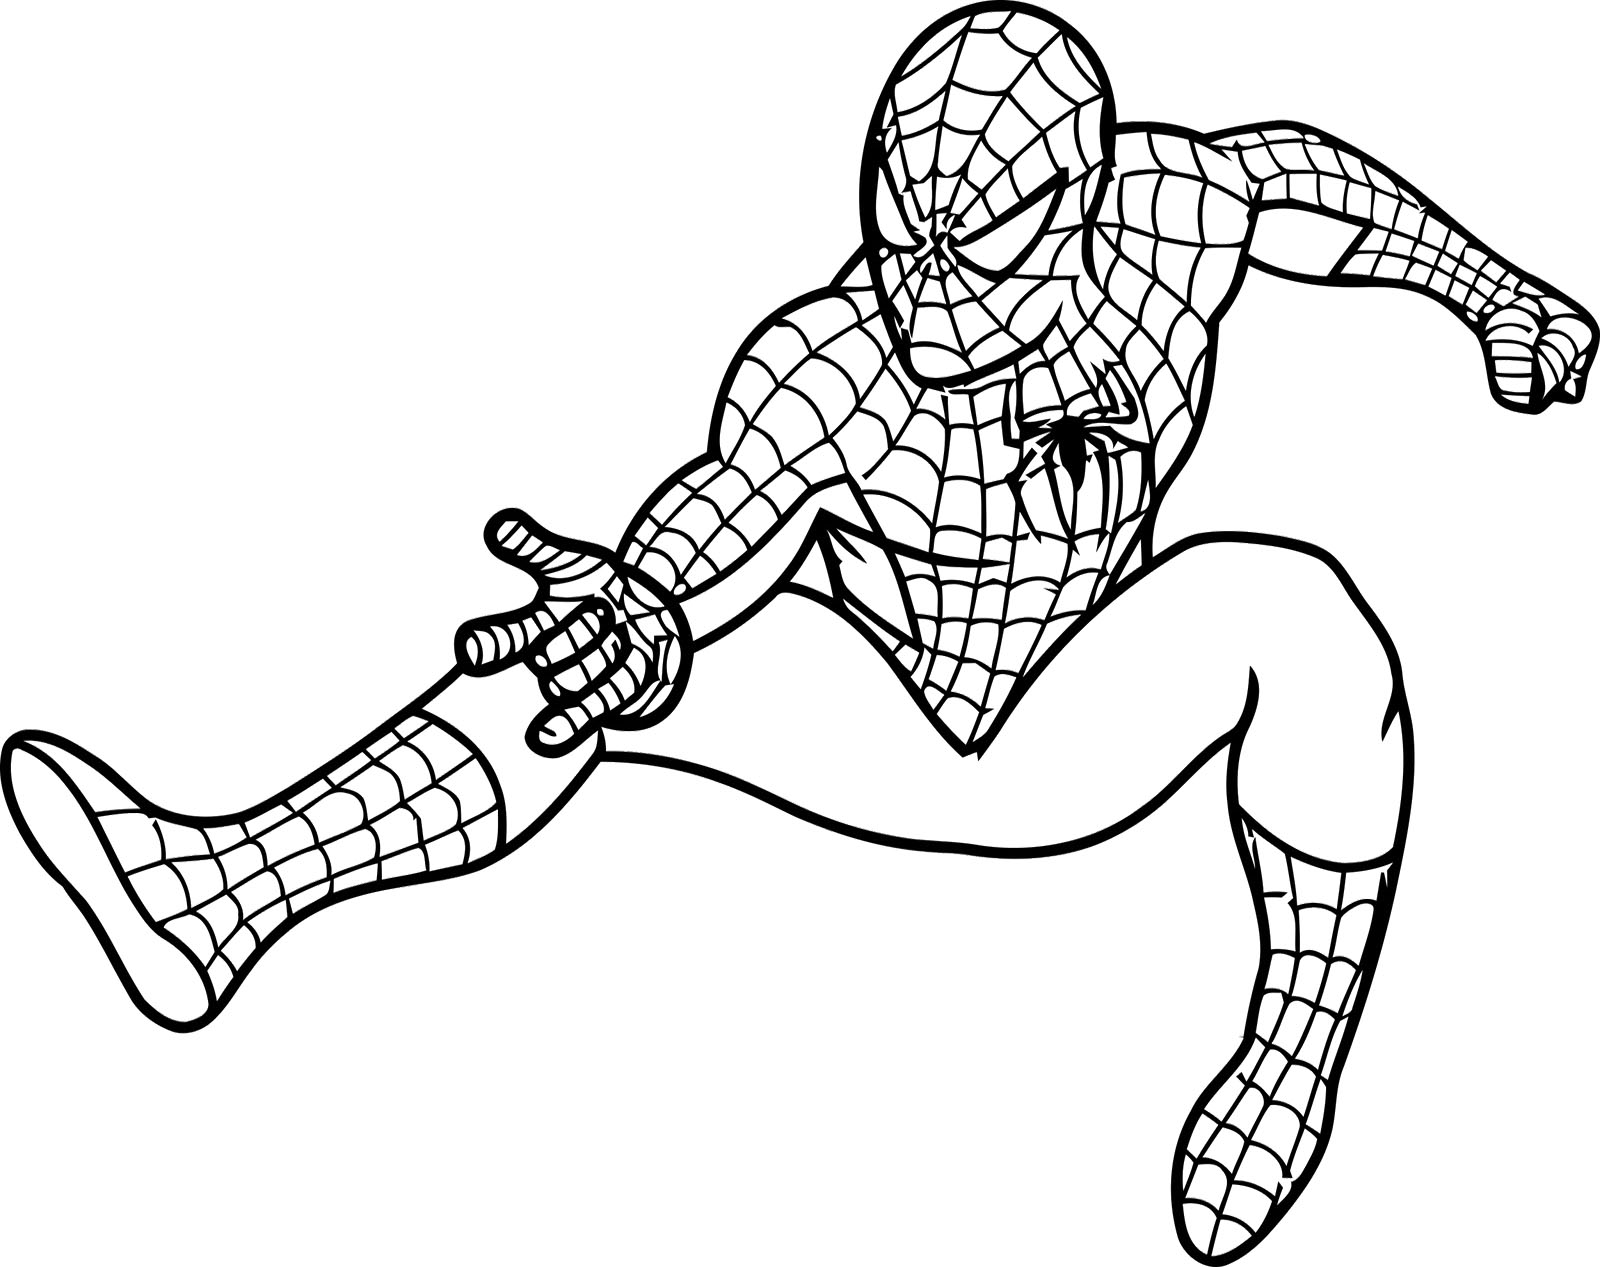 Coloring Pages That You Can Print : Coloring pages that you can print for boys girls